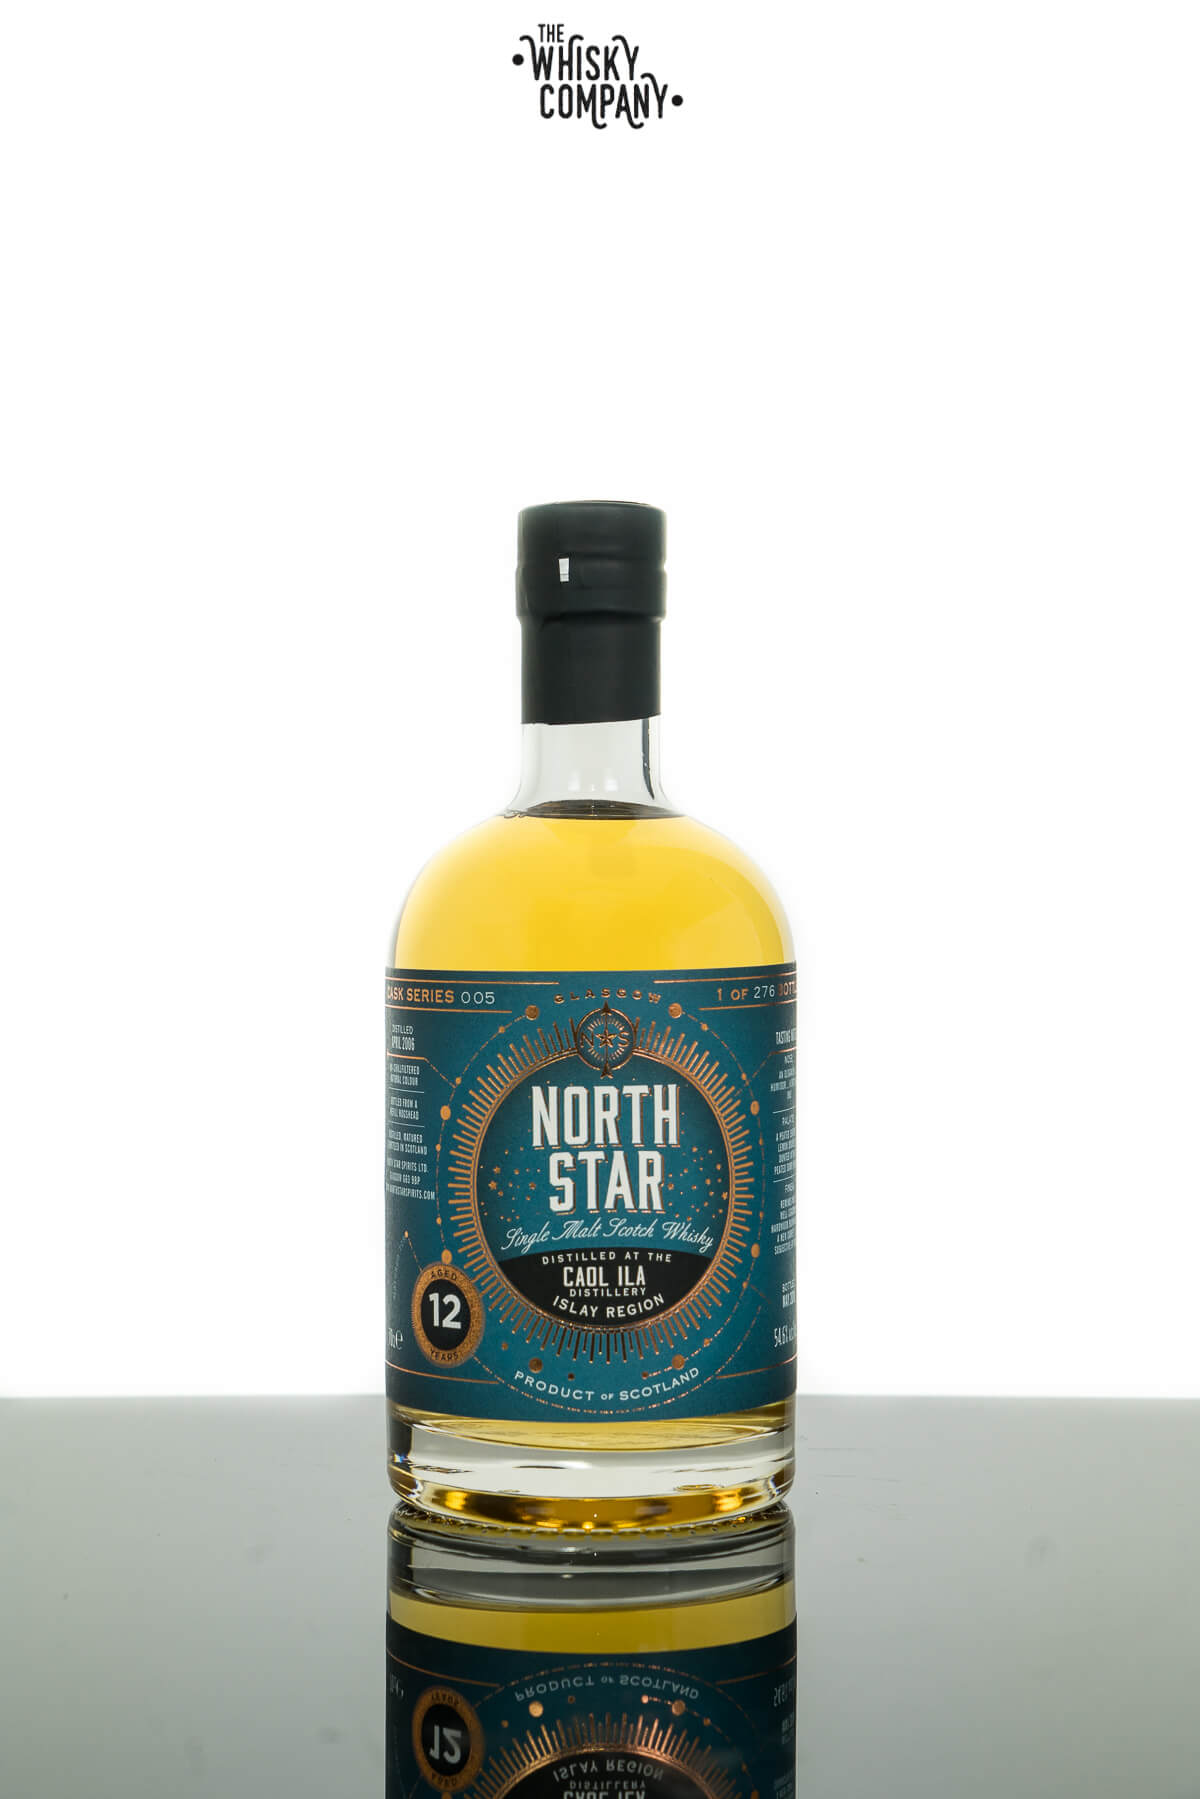 Caol Ila 2006 Aged 12 Years Old Single Malt Scotch Whisky - North Star (700ml)